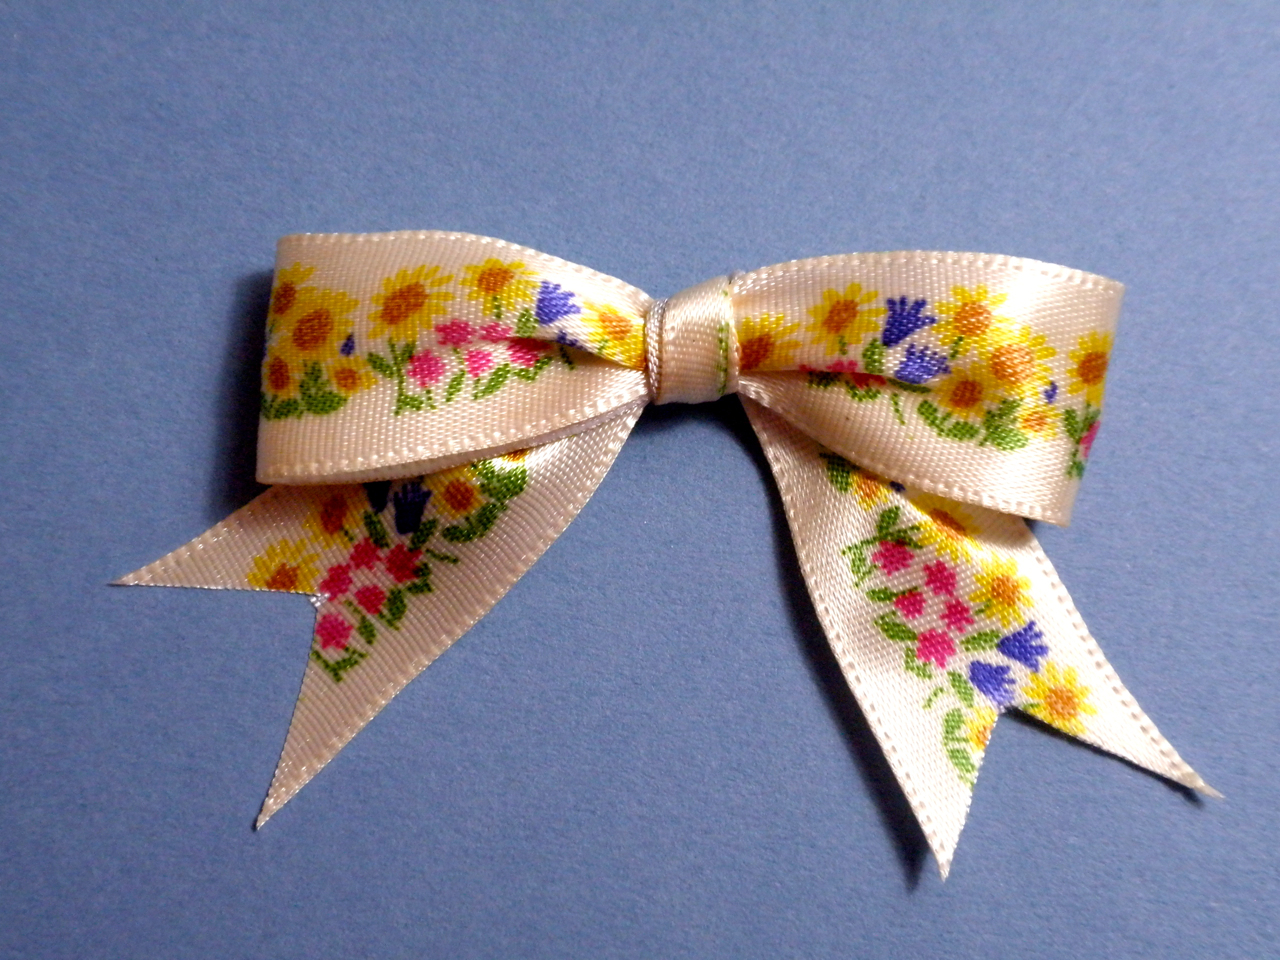 Pep Paper Tying A Patterned Ribbon Bow Right Side Up